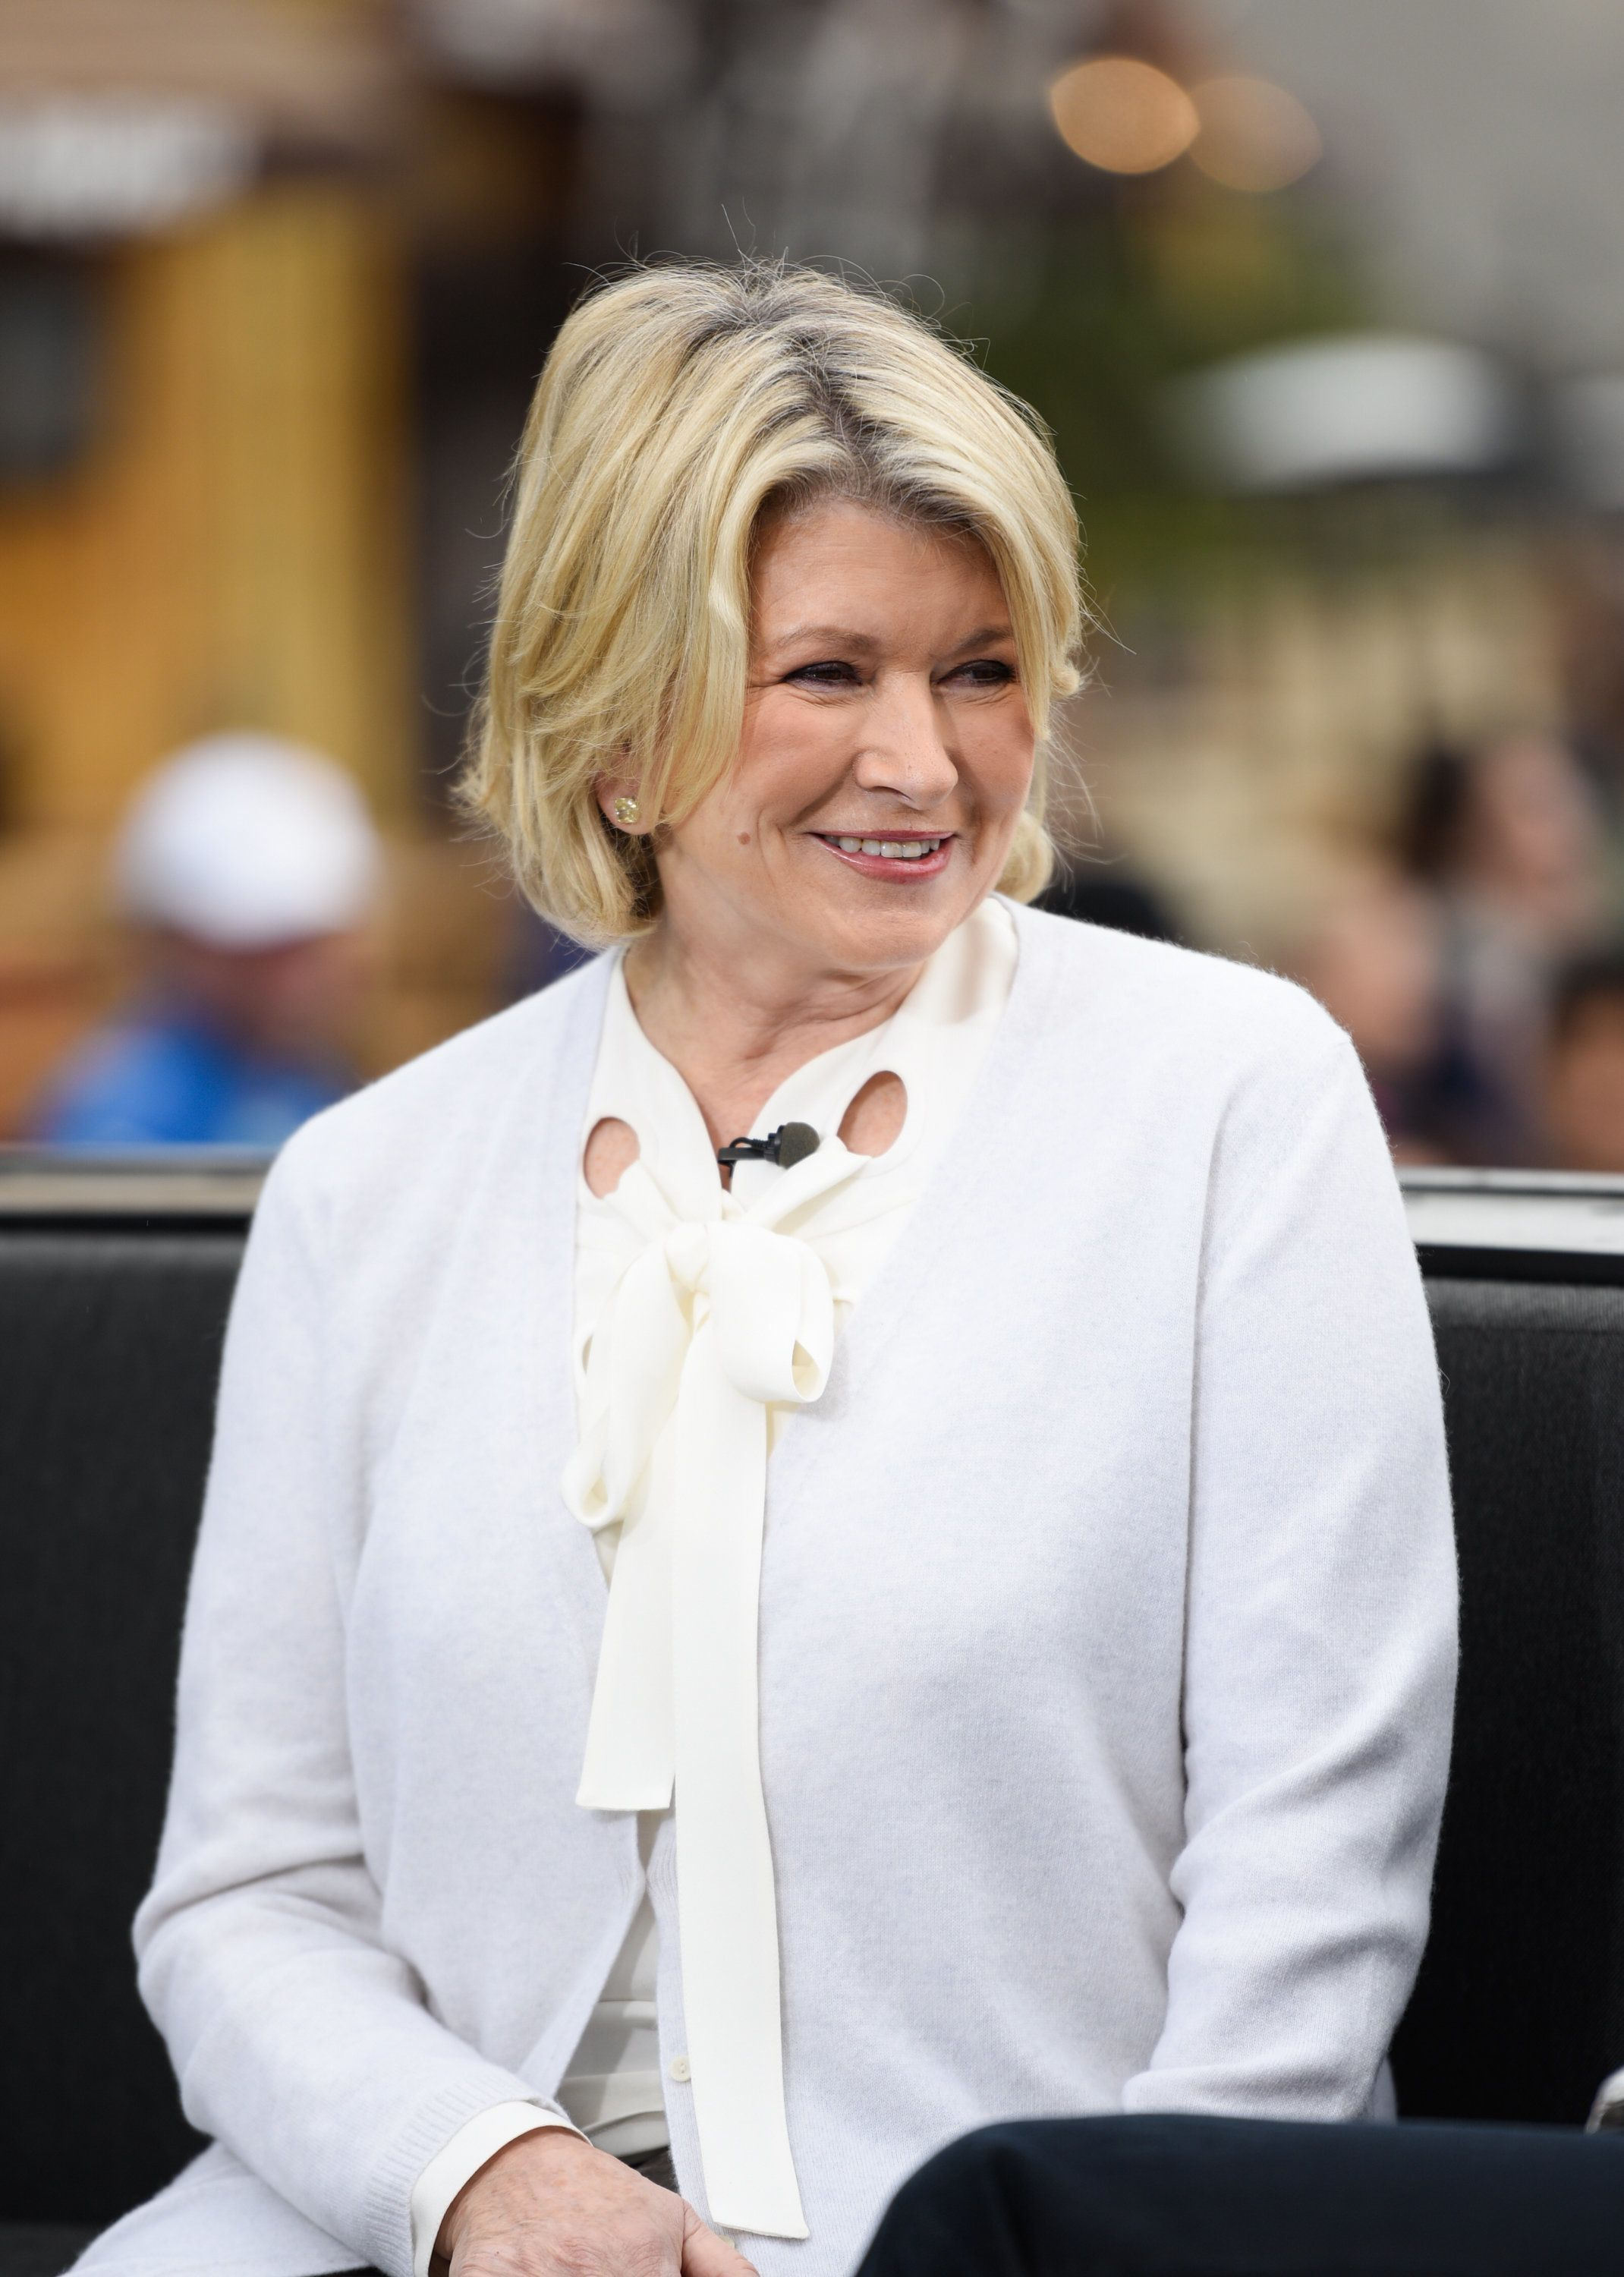 UNIVERSAL CITY, CA - JANUARY 15:  Martha Stewart visits 'Extra' at Universal Studios Hollywood on January 15, 2016 in Universal City, California.  (Photo by Noel Vasquez/Getty Images)